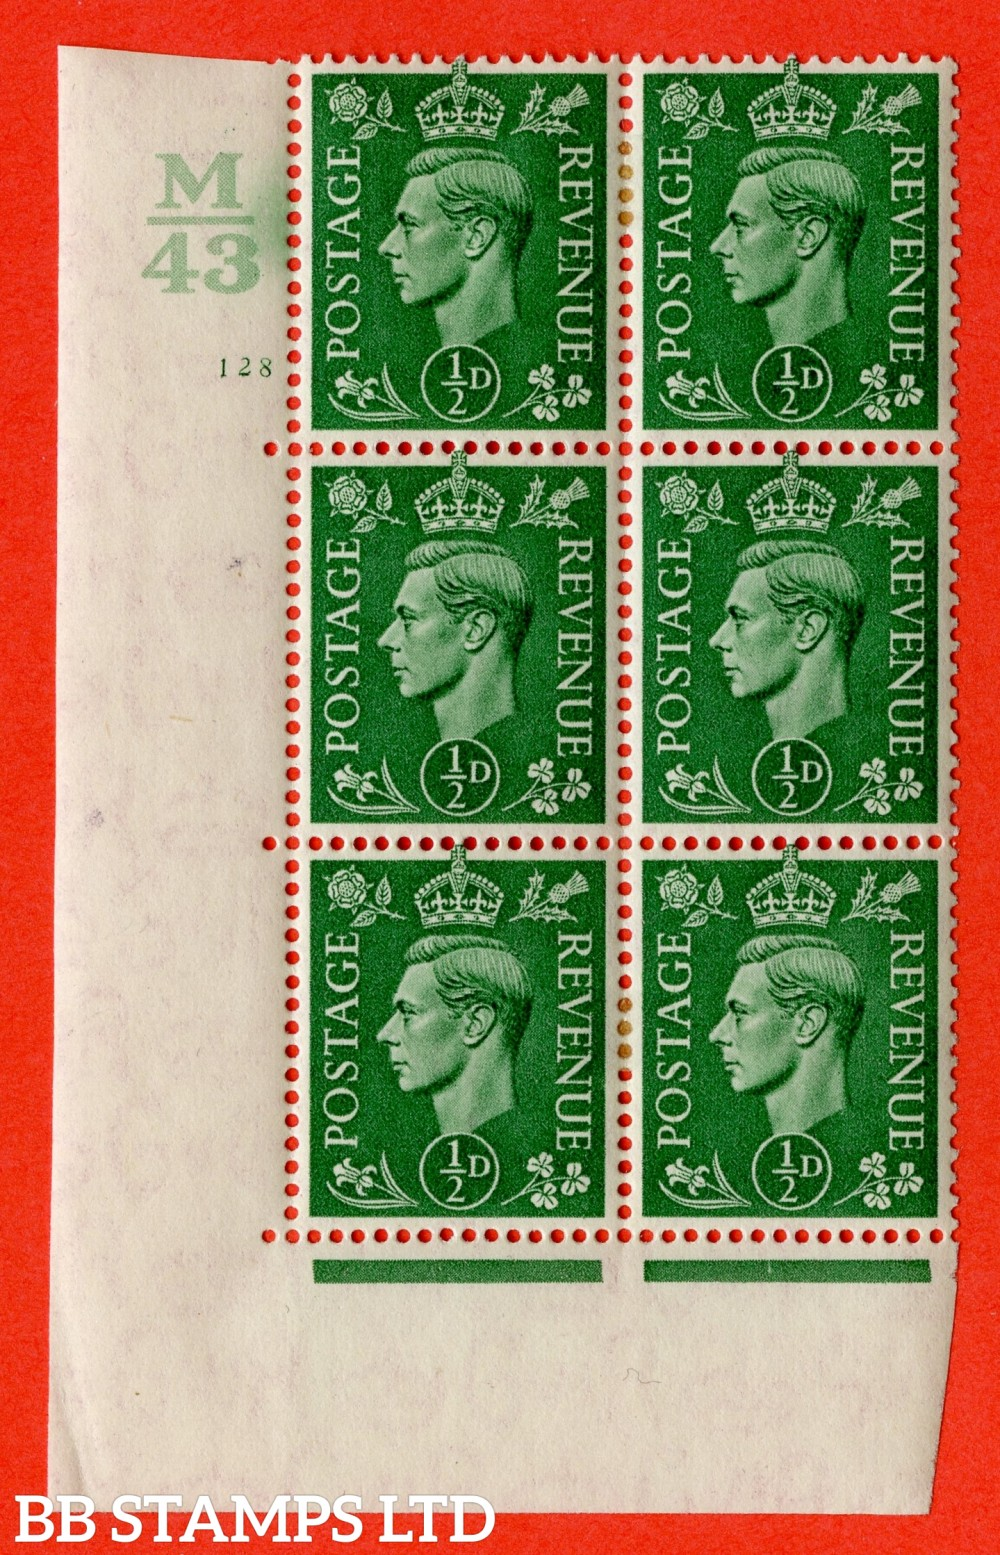 "SG. 485. Q2. ½d Pale Green. A very fine lightly mounted mint "" Control M43 cylinder 128 no dot "" block of 6 with perf type 5 E/I with marginal rule."